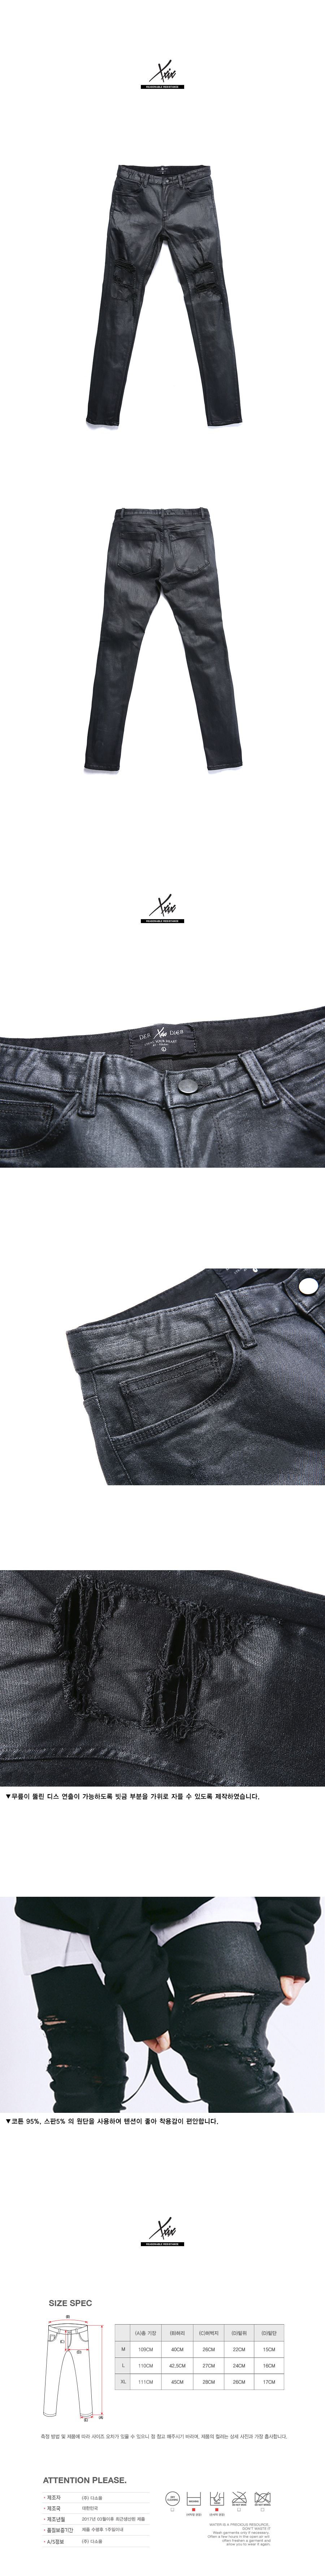 coated_jeans_detail.jpg